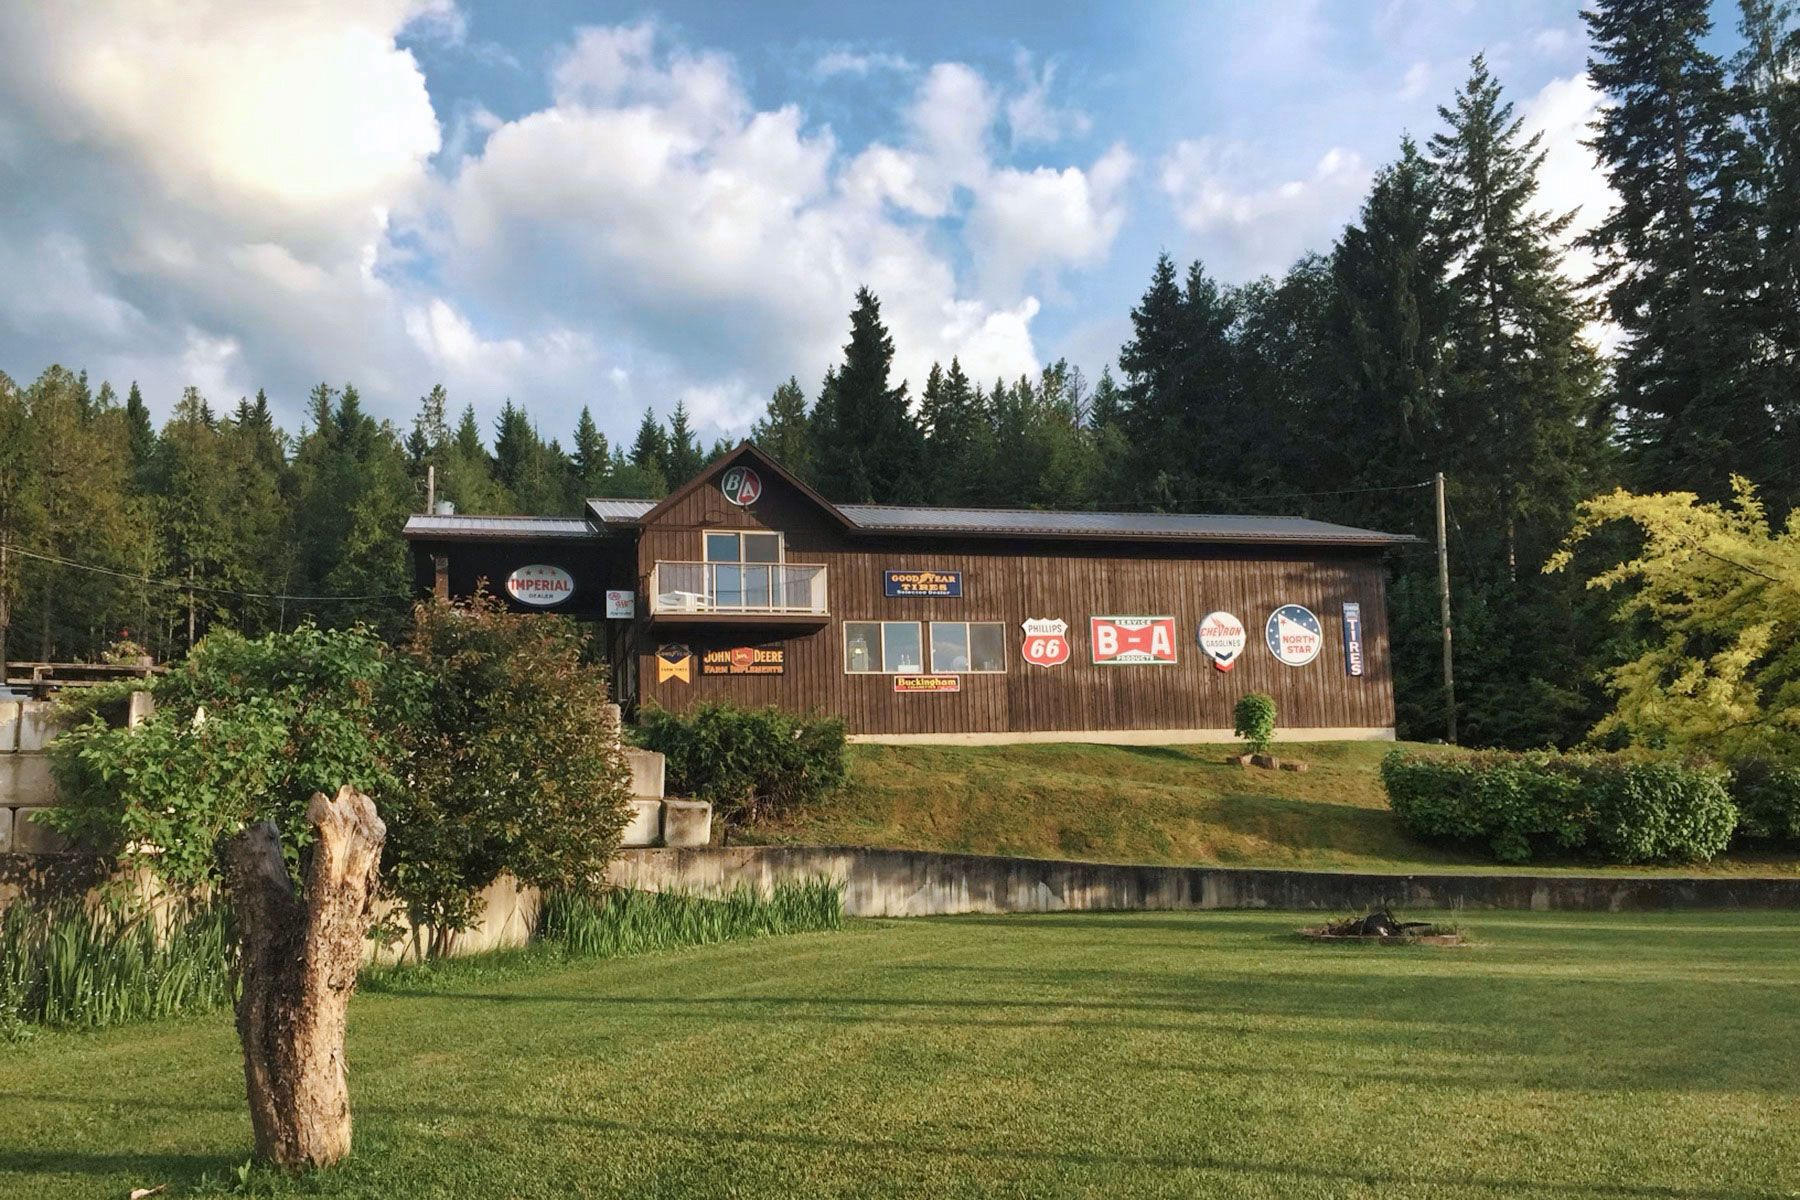 Photo 3: Photos: 1350 Trans Canada Highway in Sorrento: House for sale : MLS®# 10225818